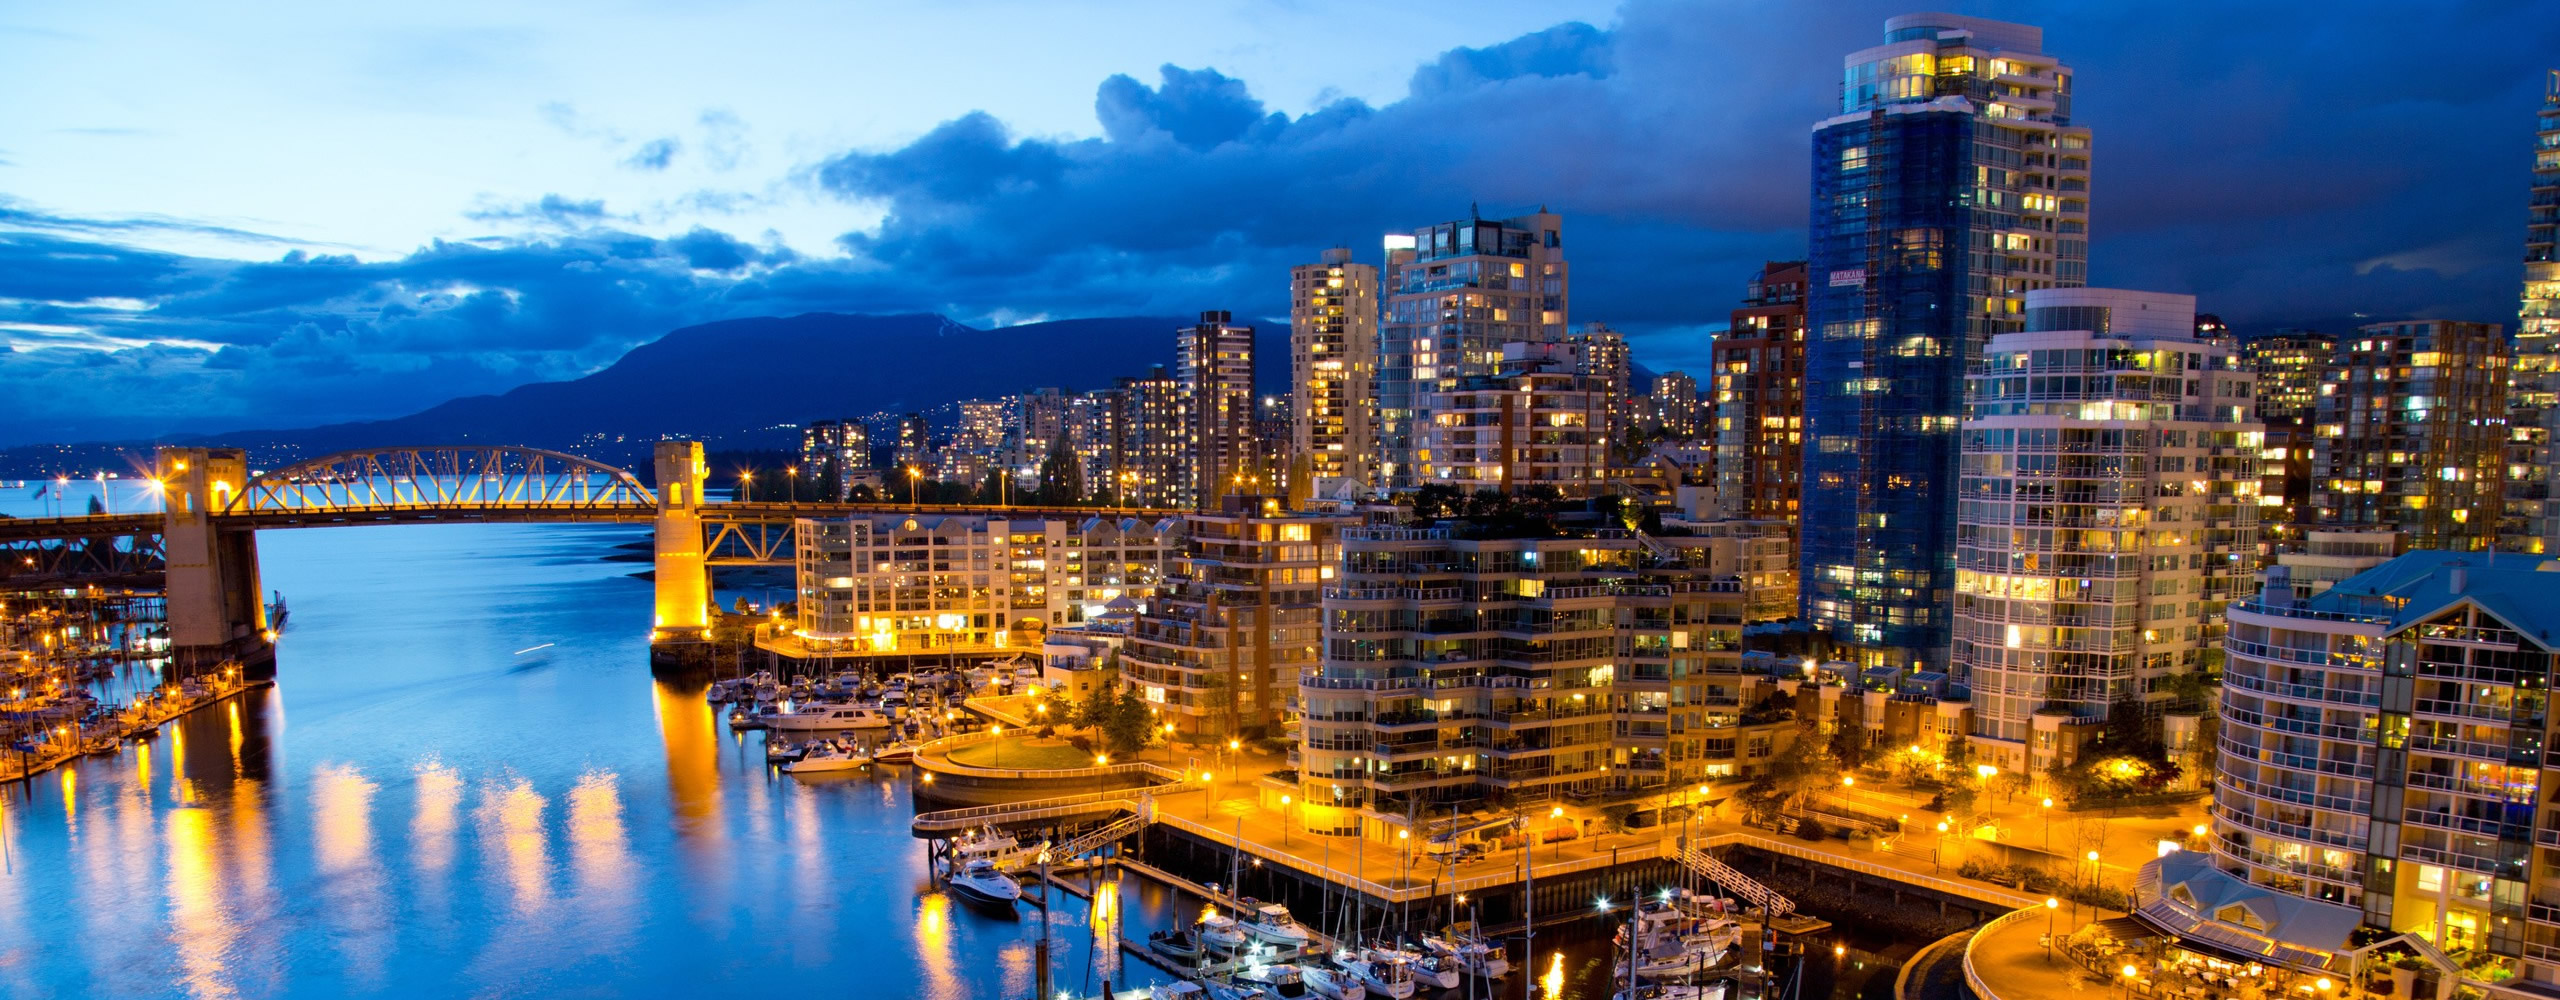 vancouver-city-night-blue-sky1